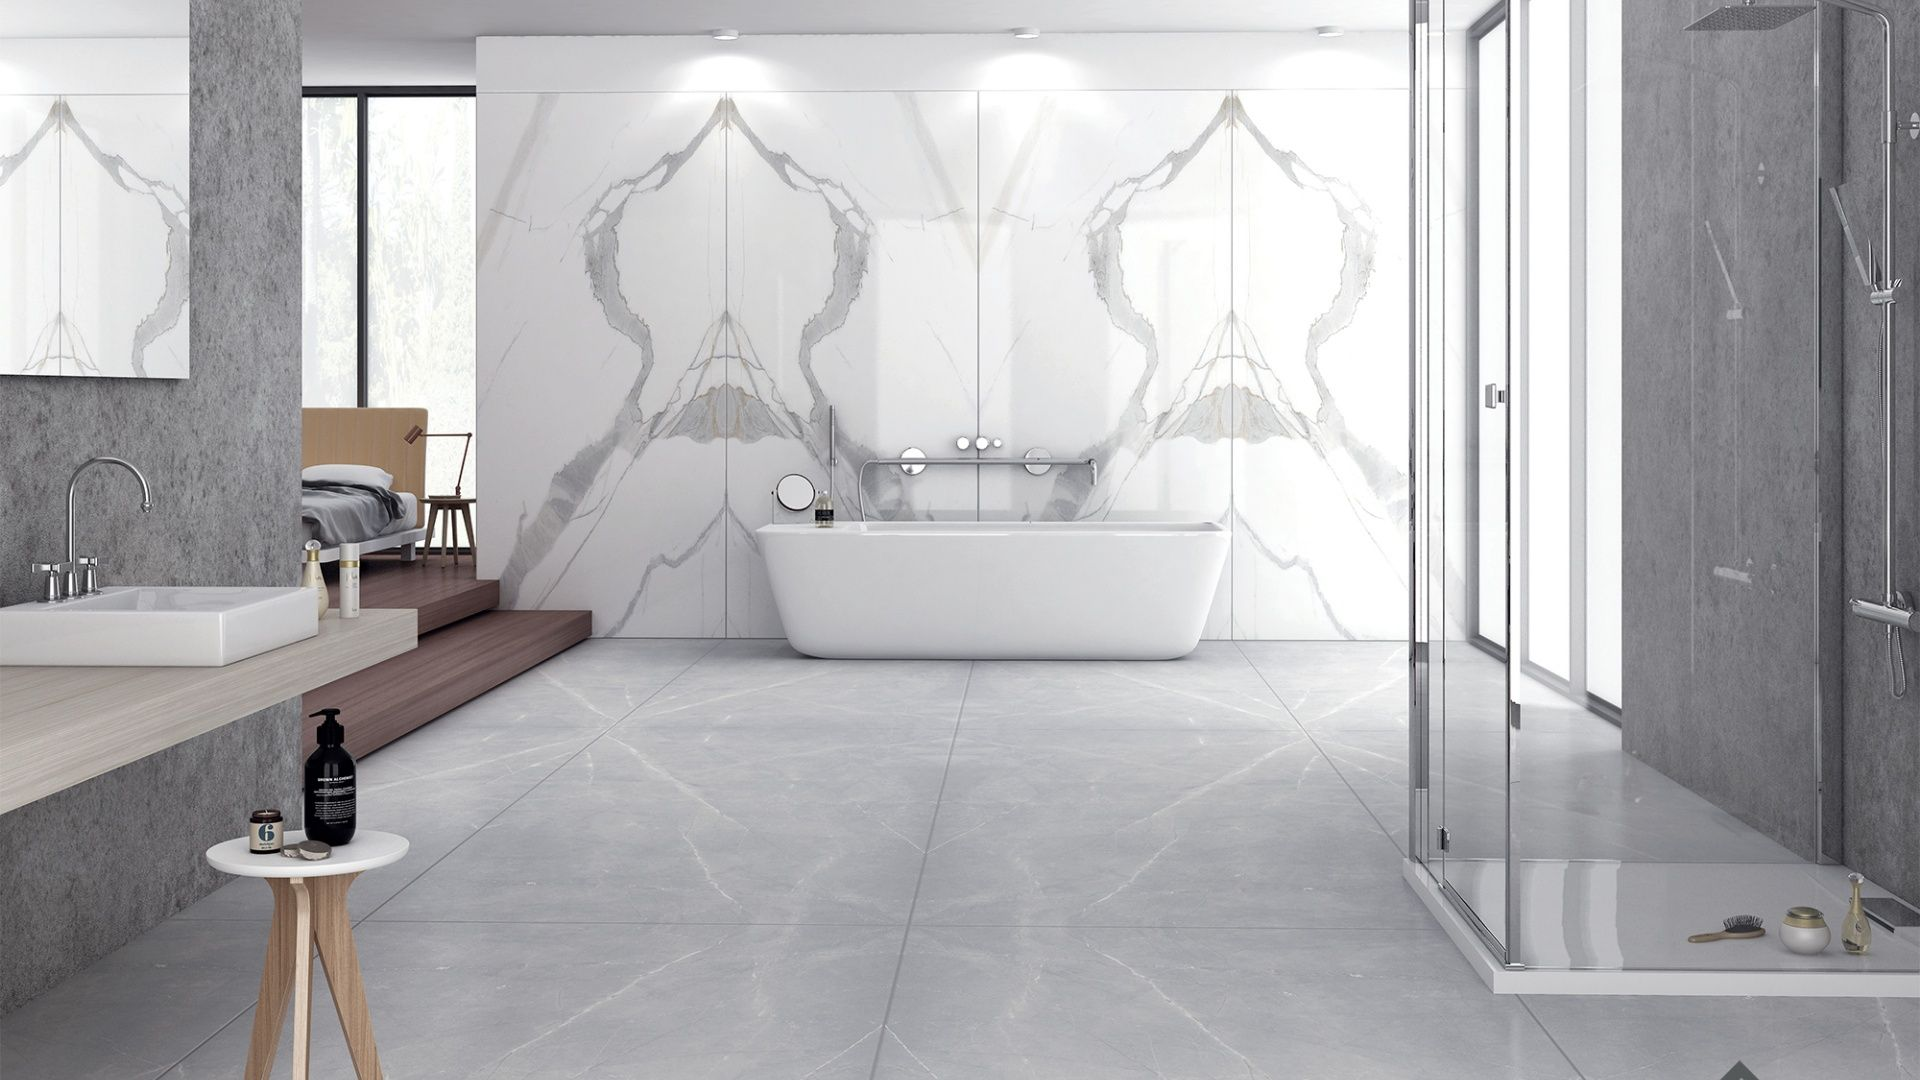 Cruso Surfaces Ceramica Morbi India A Top Tile Tiles Porcelain Tiles Manufacturer Exporter Tile Manufacturers Wall And Floor Tiles Tiles